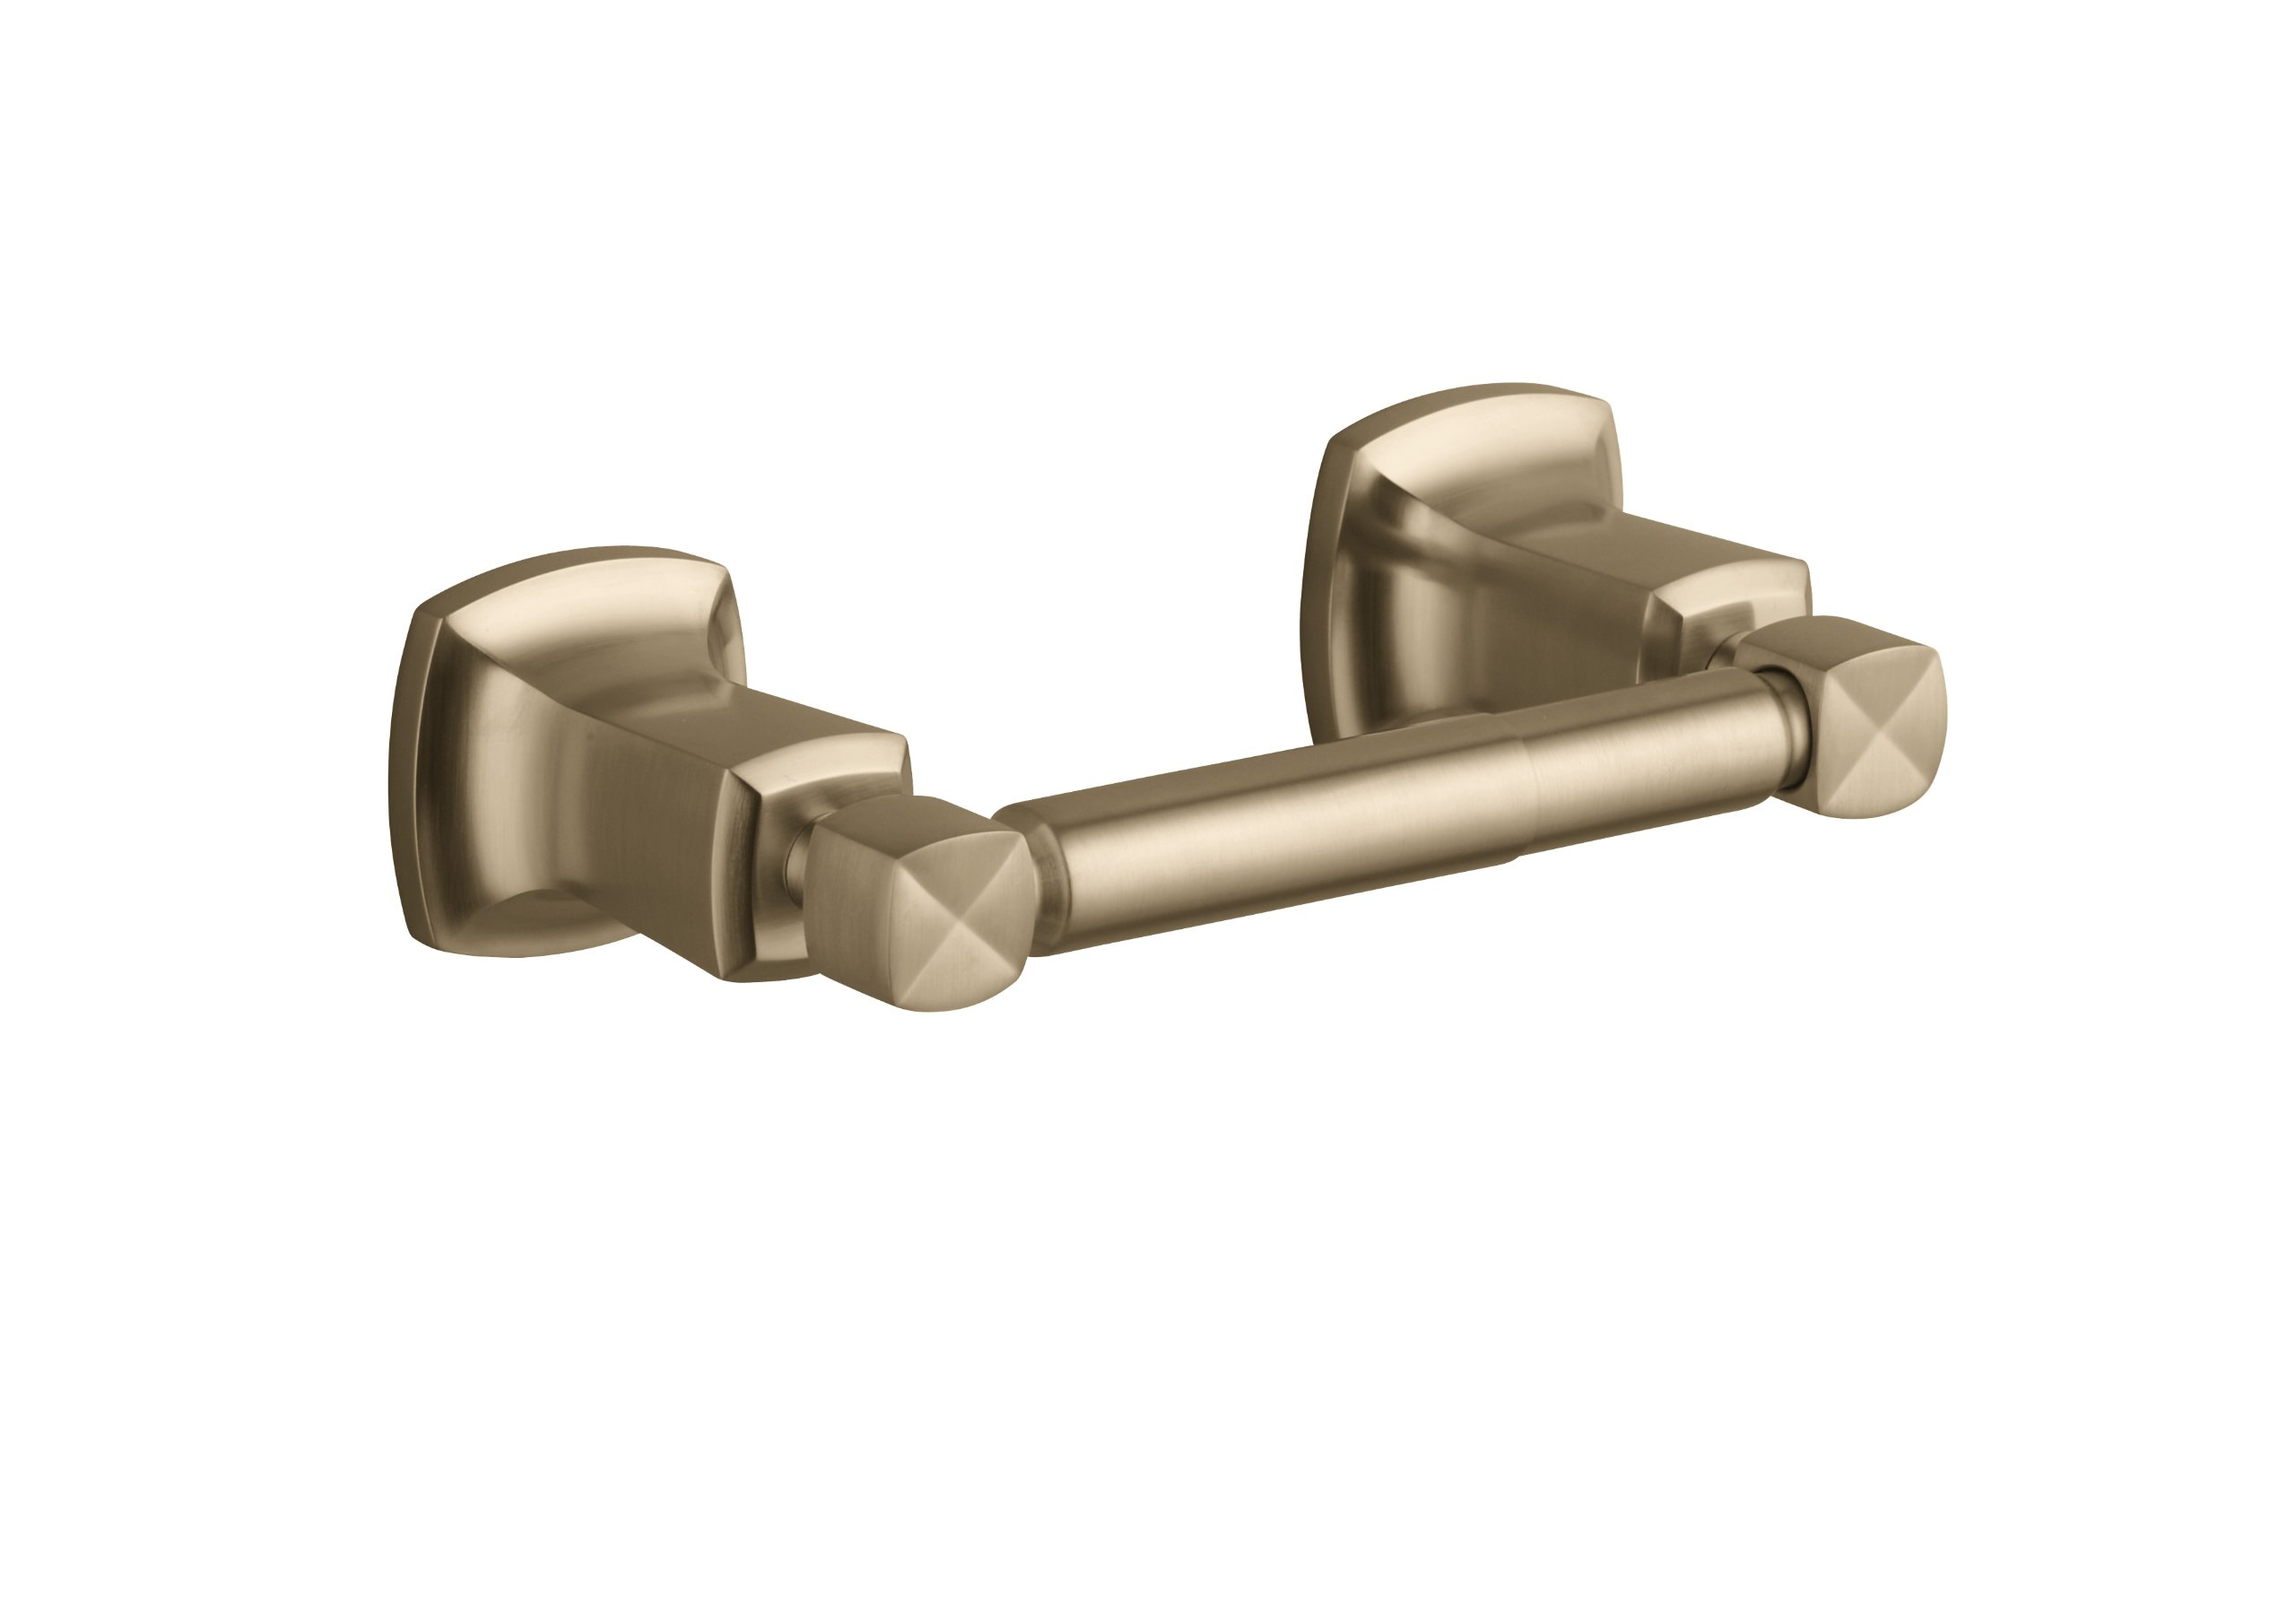 Kohler K-16265-BV Margaux Horizontal Toilet Tissue Holder, Vibrant Brushed Bronze